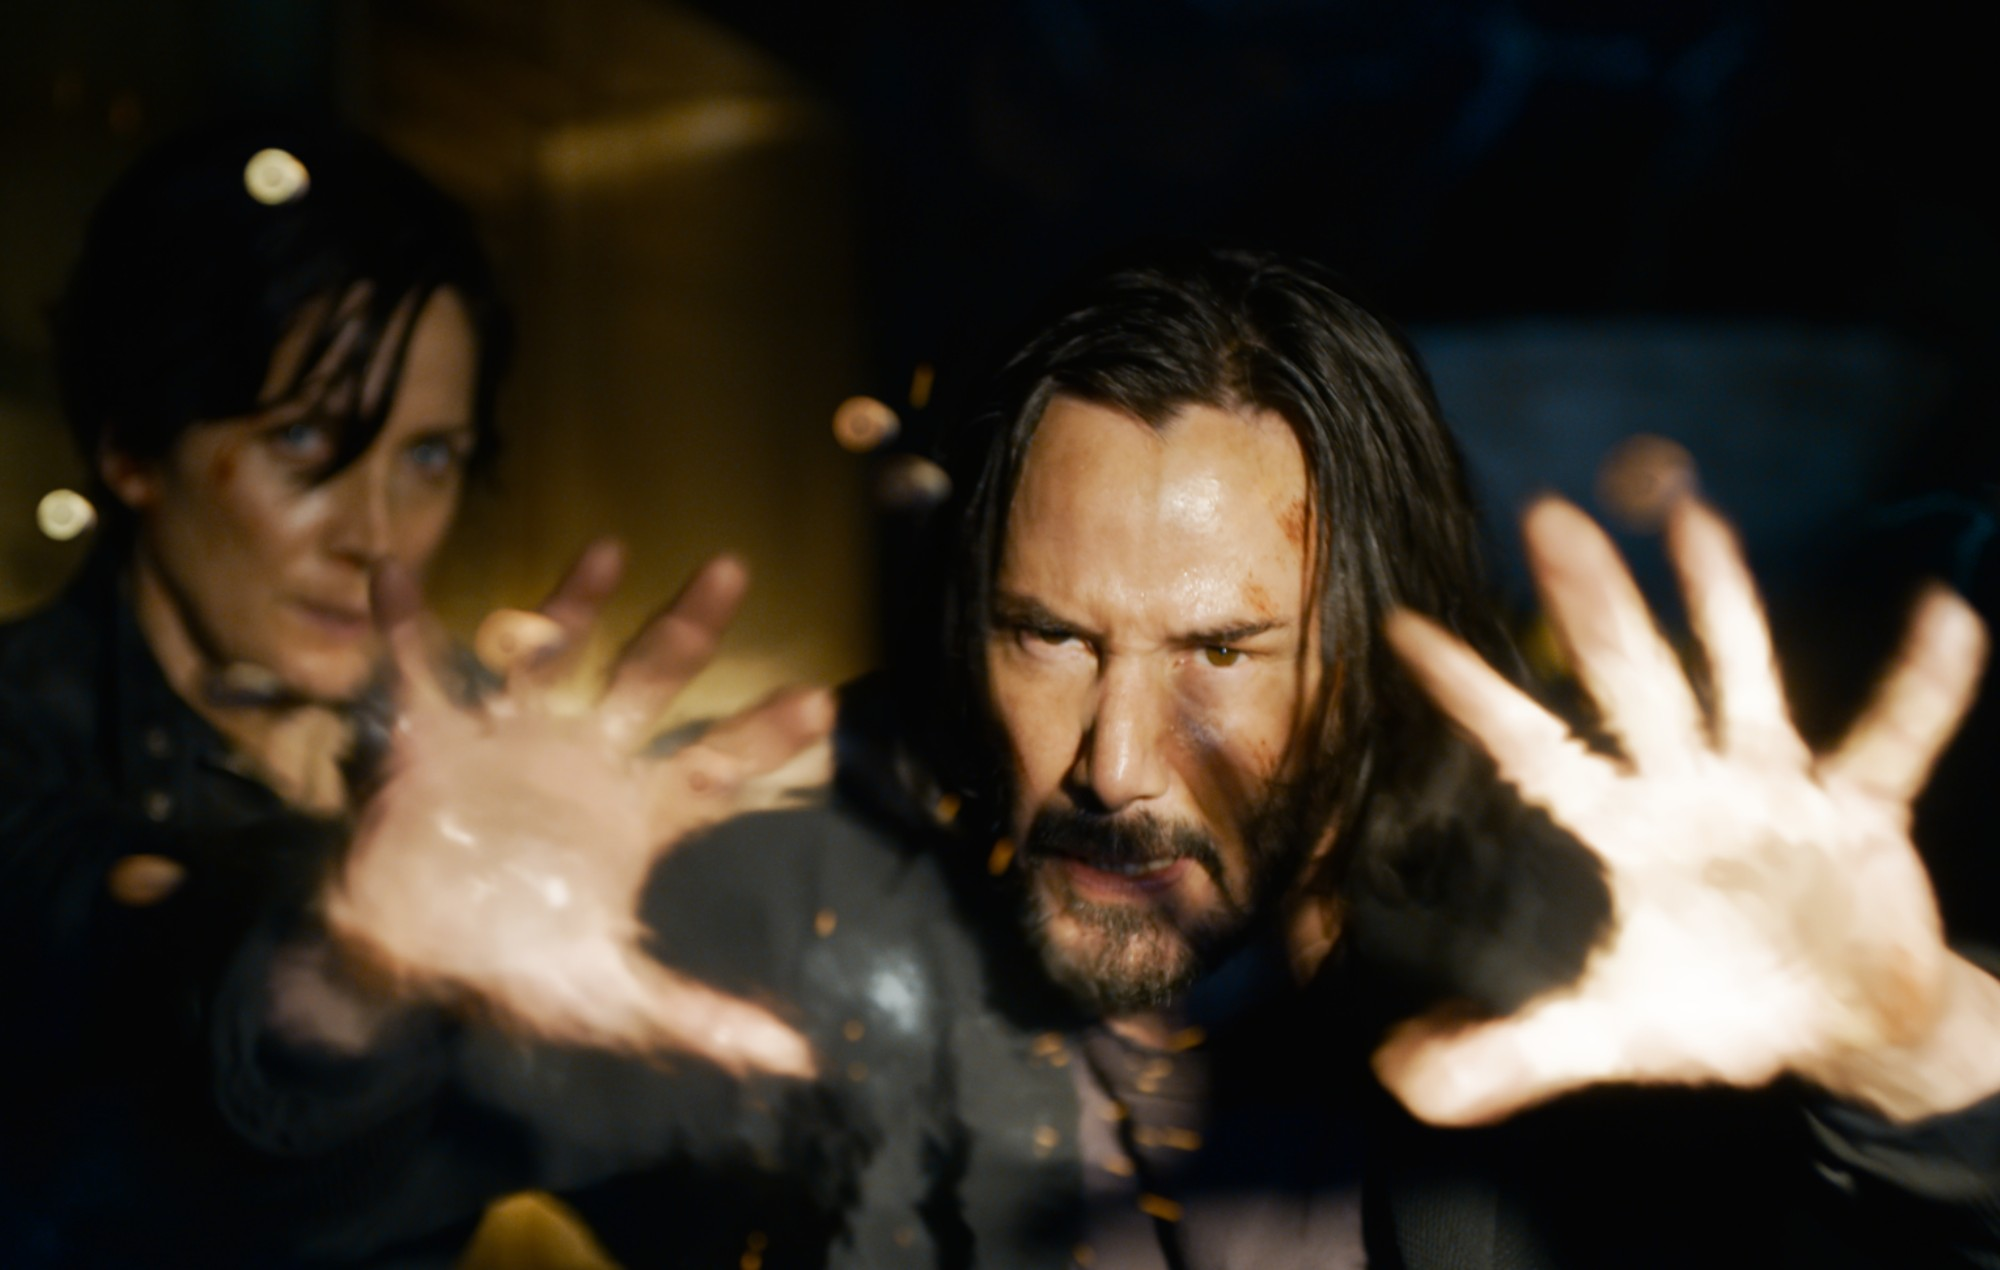 'The Matrix 4': release date, trailers, cast and everything we know so far - NME.com